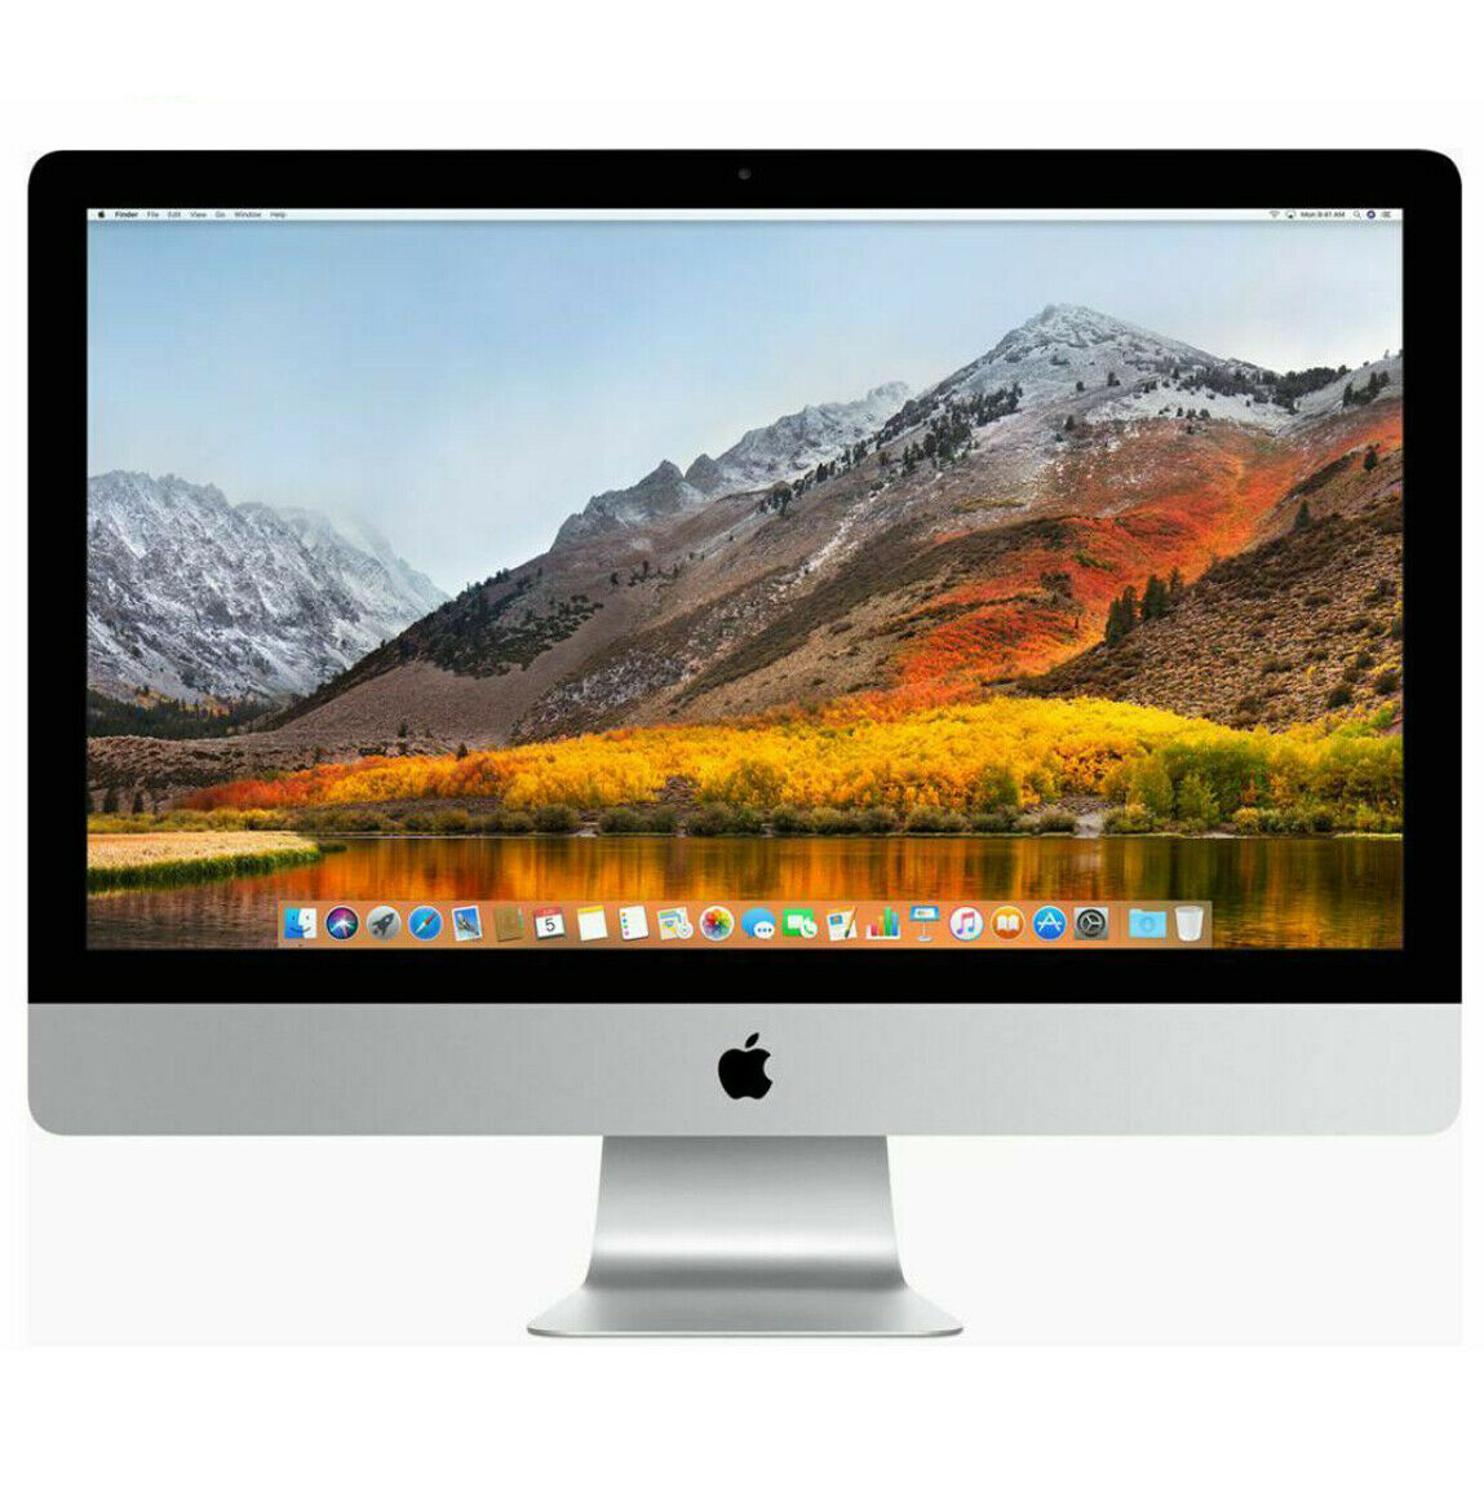 Apple IMac 21 52 4x I5 2,5 GHz 8 Hard Gb RAM DDR3 500 Gb Hard Drive OS High Sierra 10.13.6 WebCam Dvd